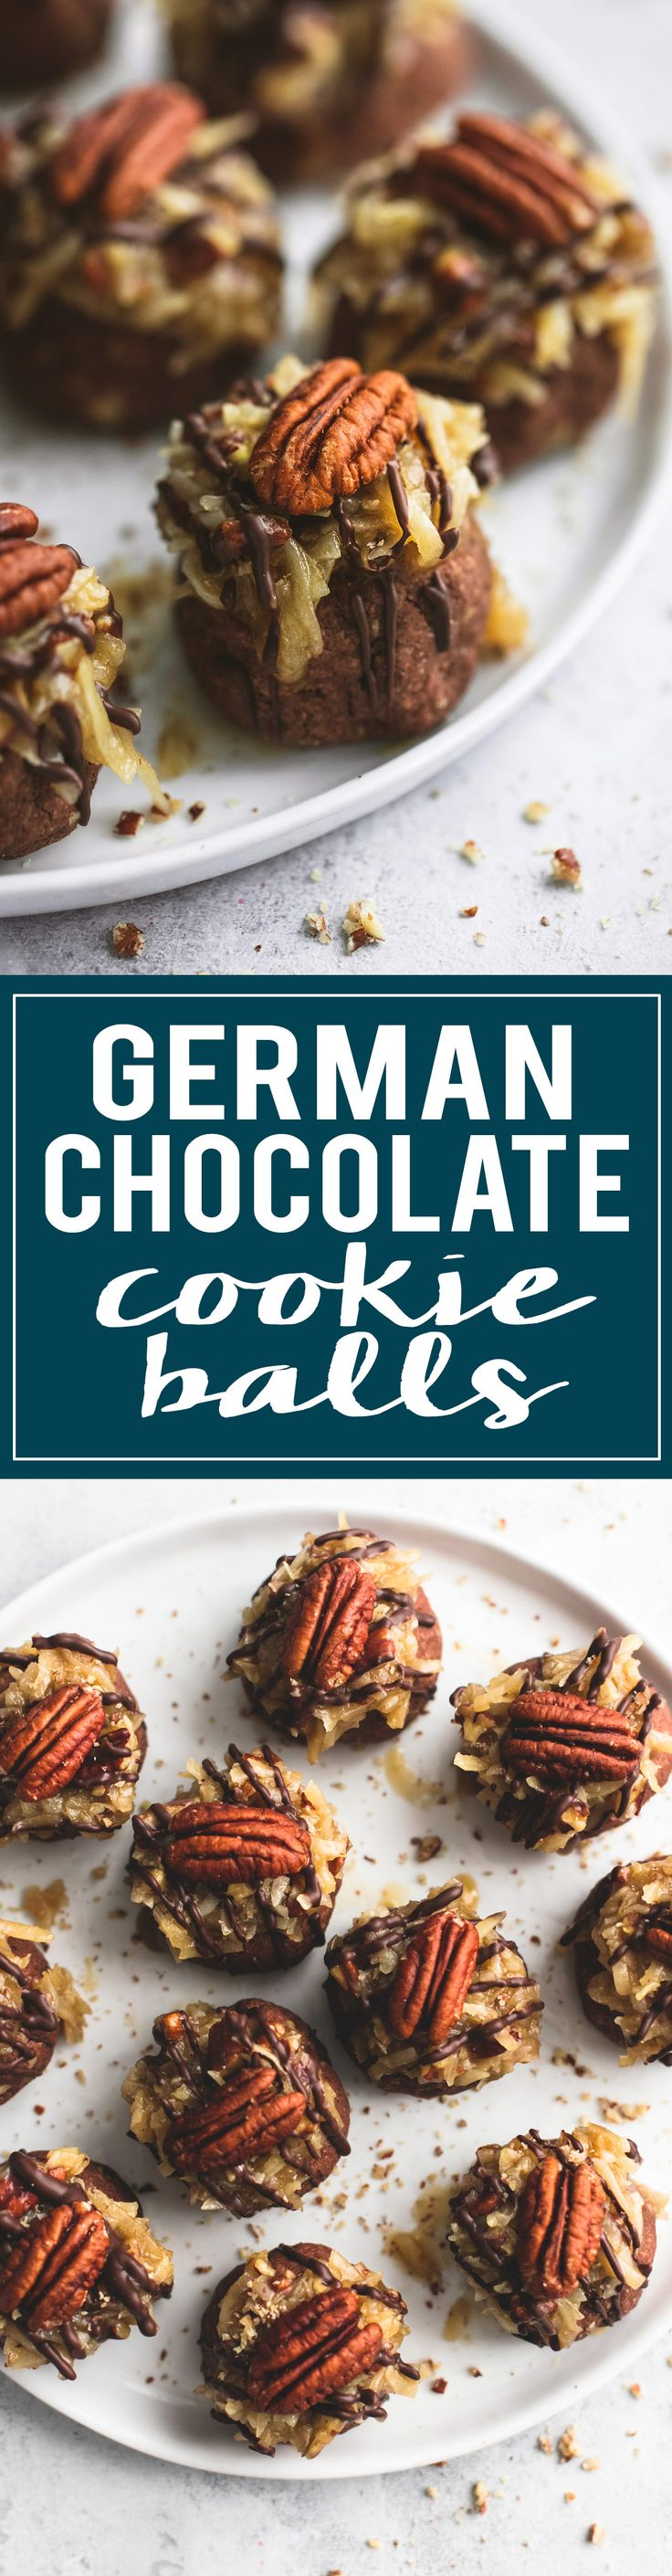 German Chocolate Cookie Balls are soft, super chocolatey and topped with the best coconut pecan frosting! | lecremedelacrumb.com